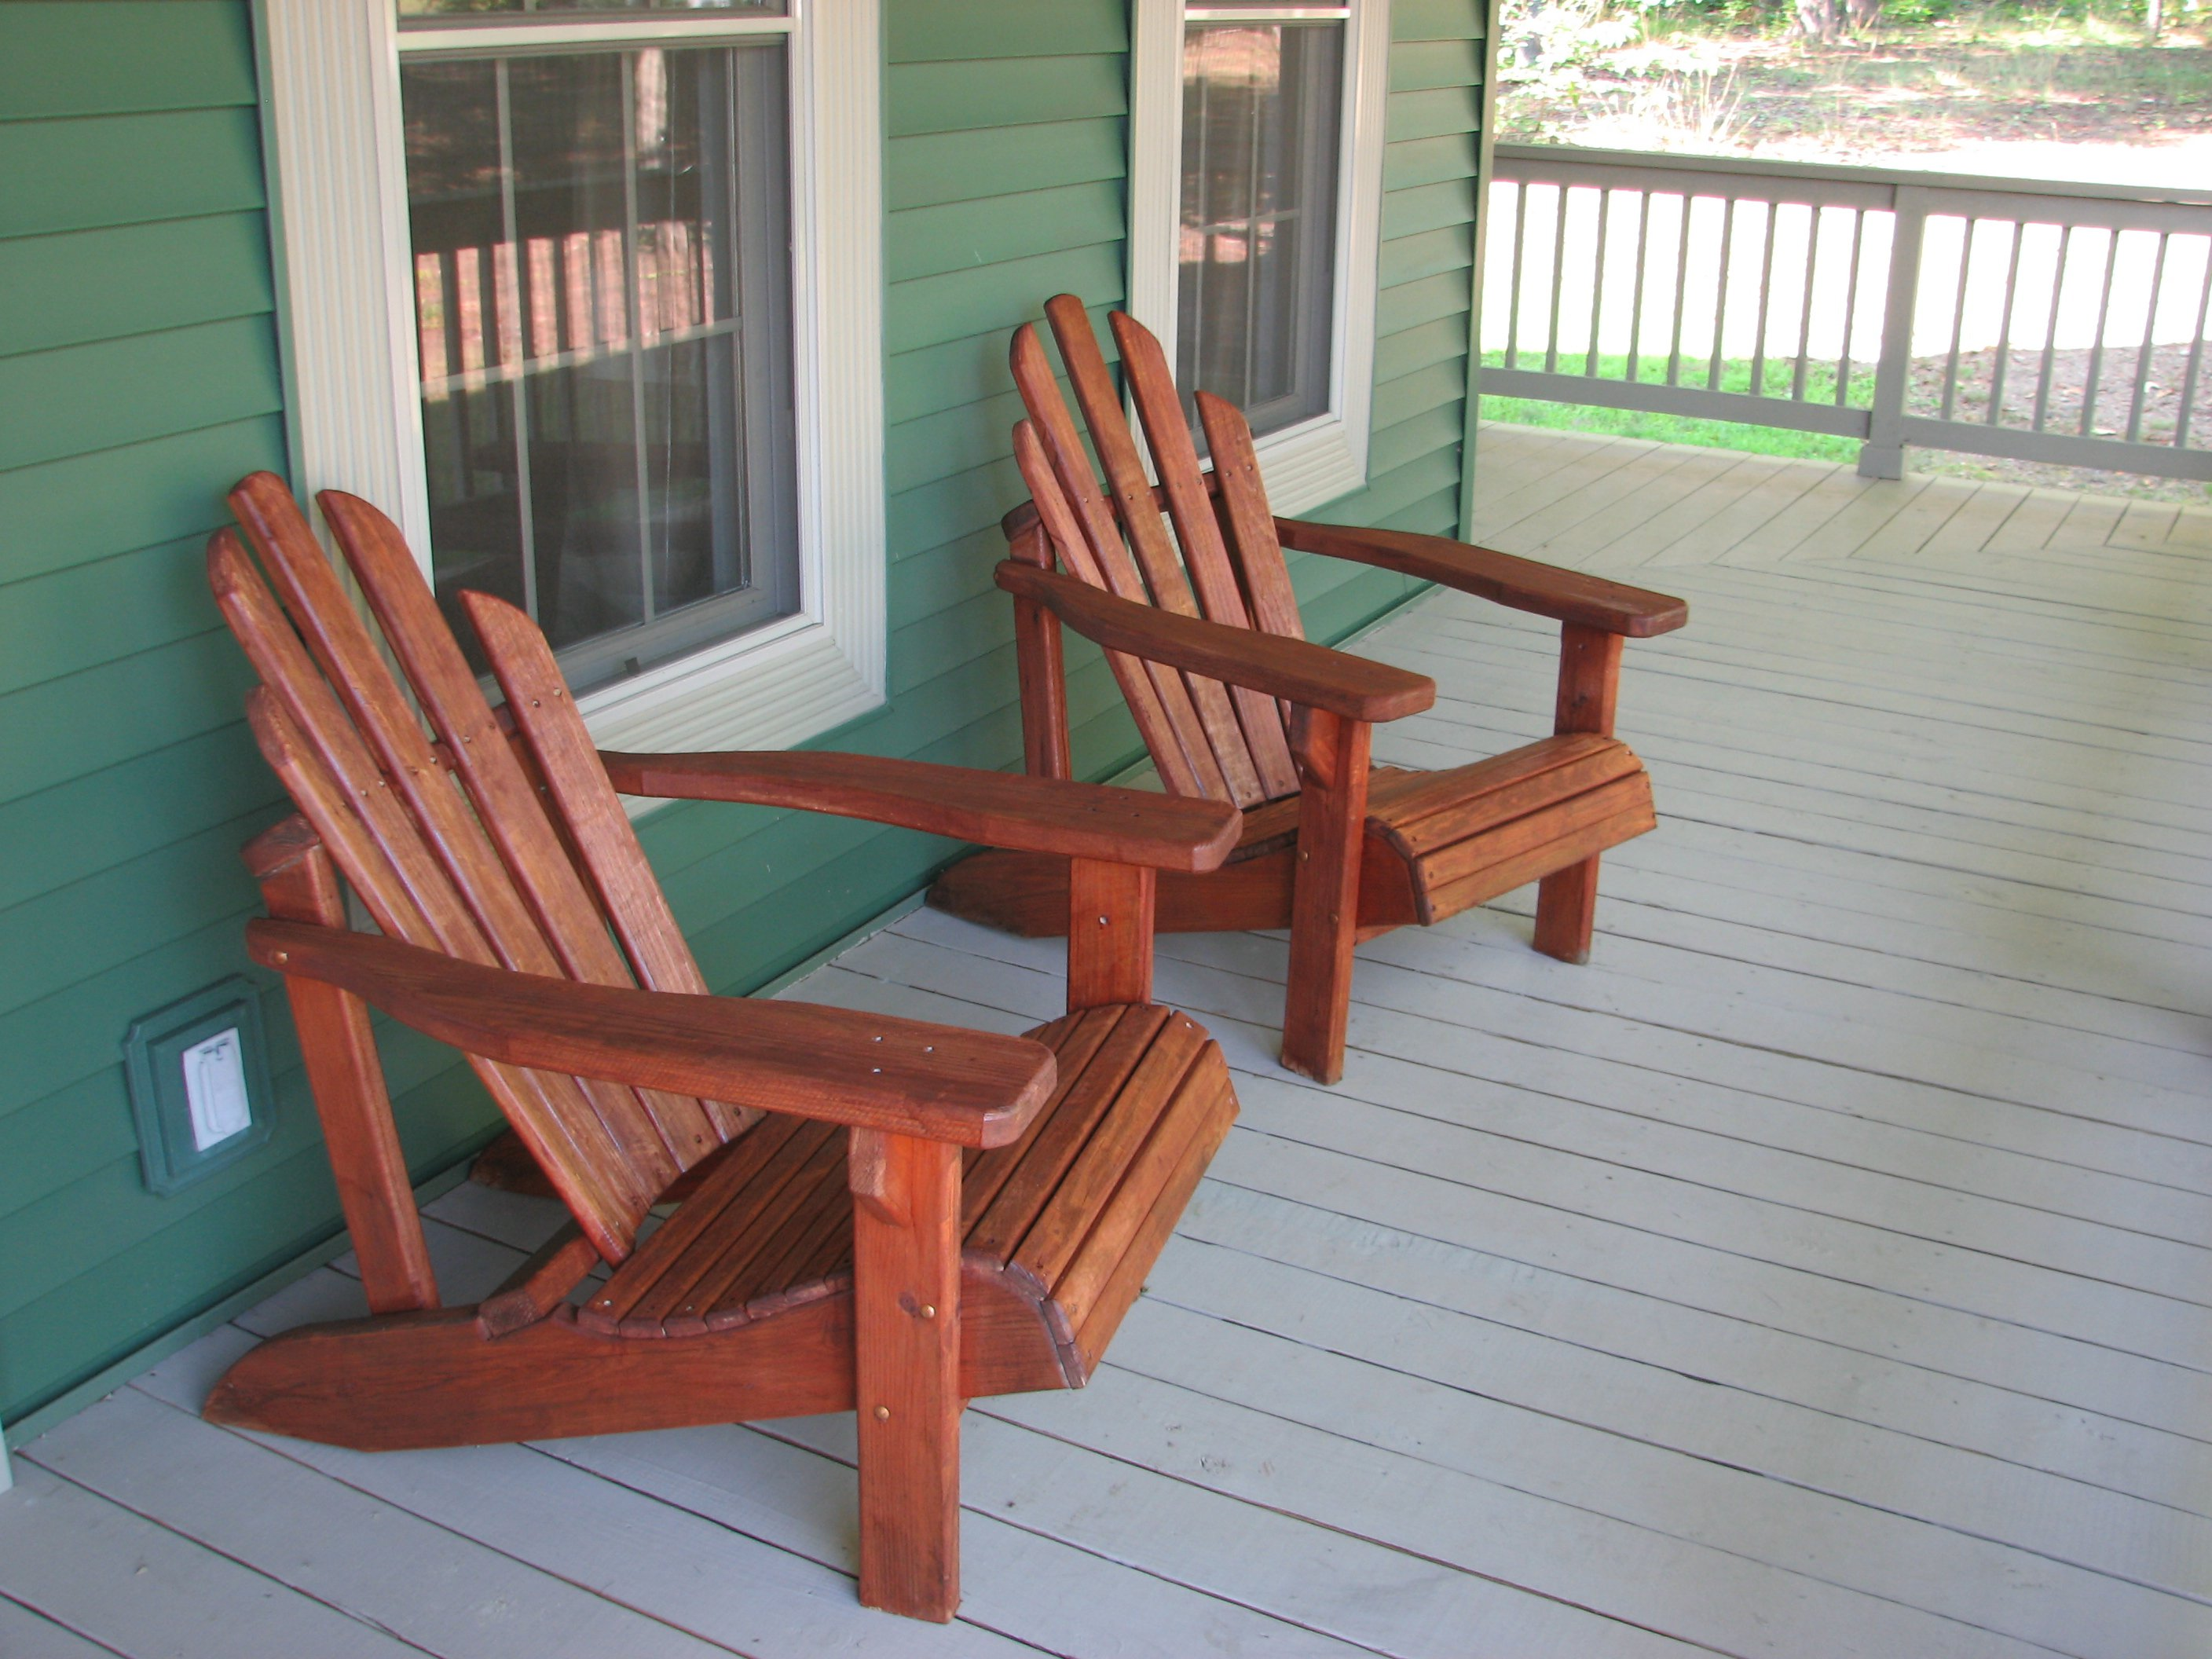 Double Teak Adirondack Chairs On Wheat Deck Matched With Green Wall For  Exterior Decor Ideas